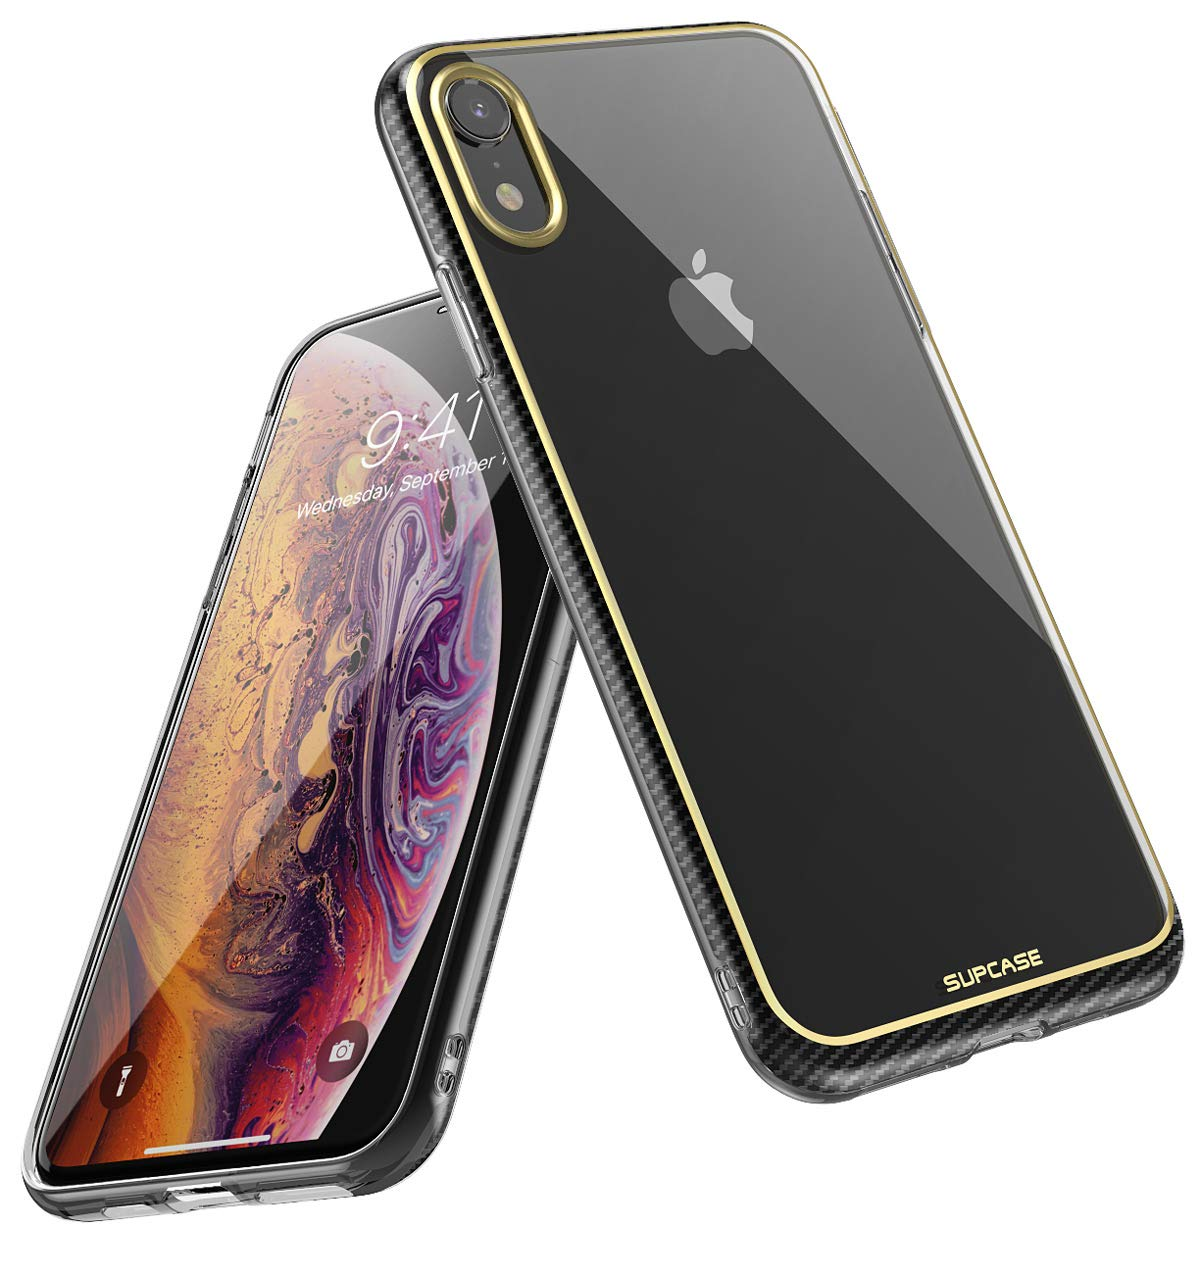 iPhone XR Case, SUPCASE Slim Clear Soft TPU Transparent Premium Protective Cover Supports Wireless Charging for iPhone XR 6.1 Inch (2018 Release) -Unicorn Beetle Metro Series (Gold)